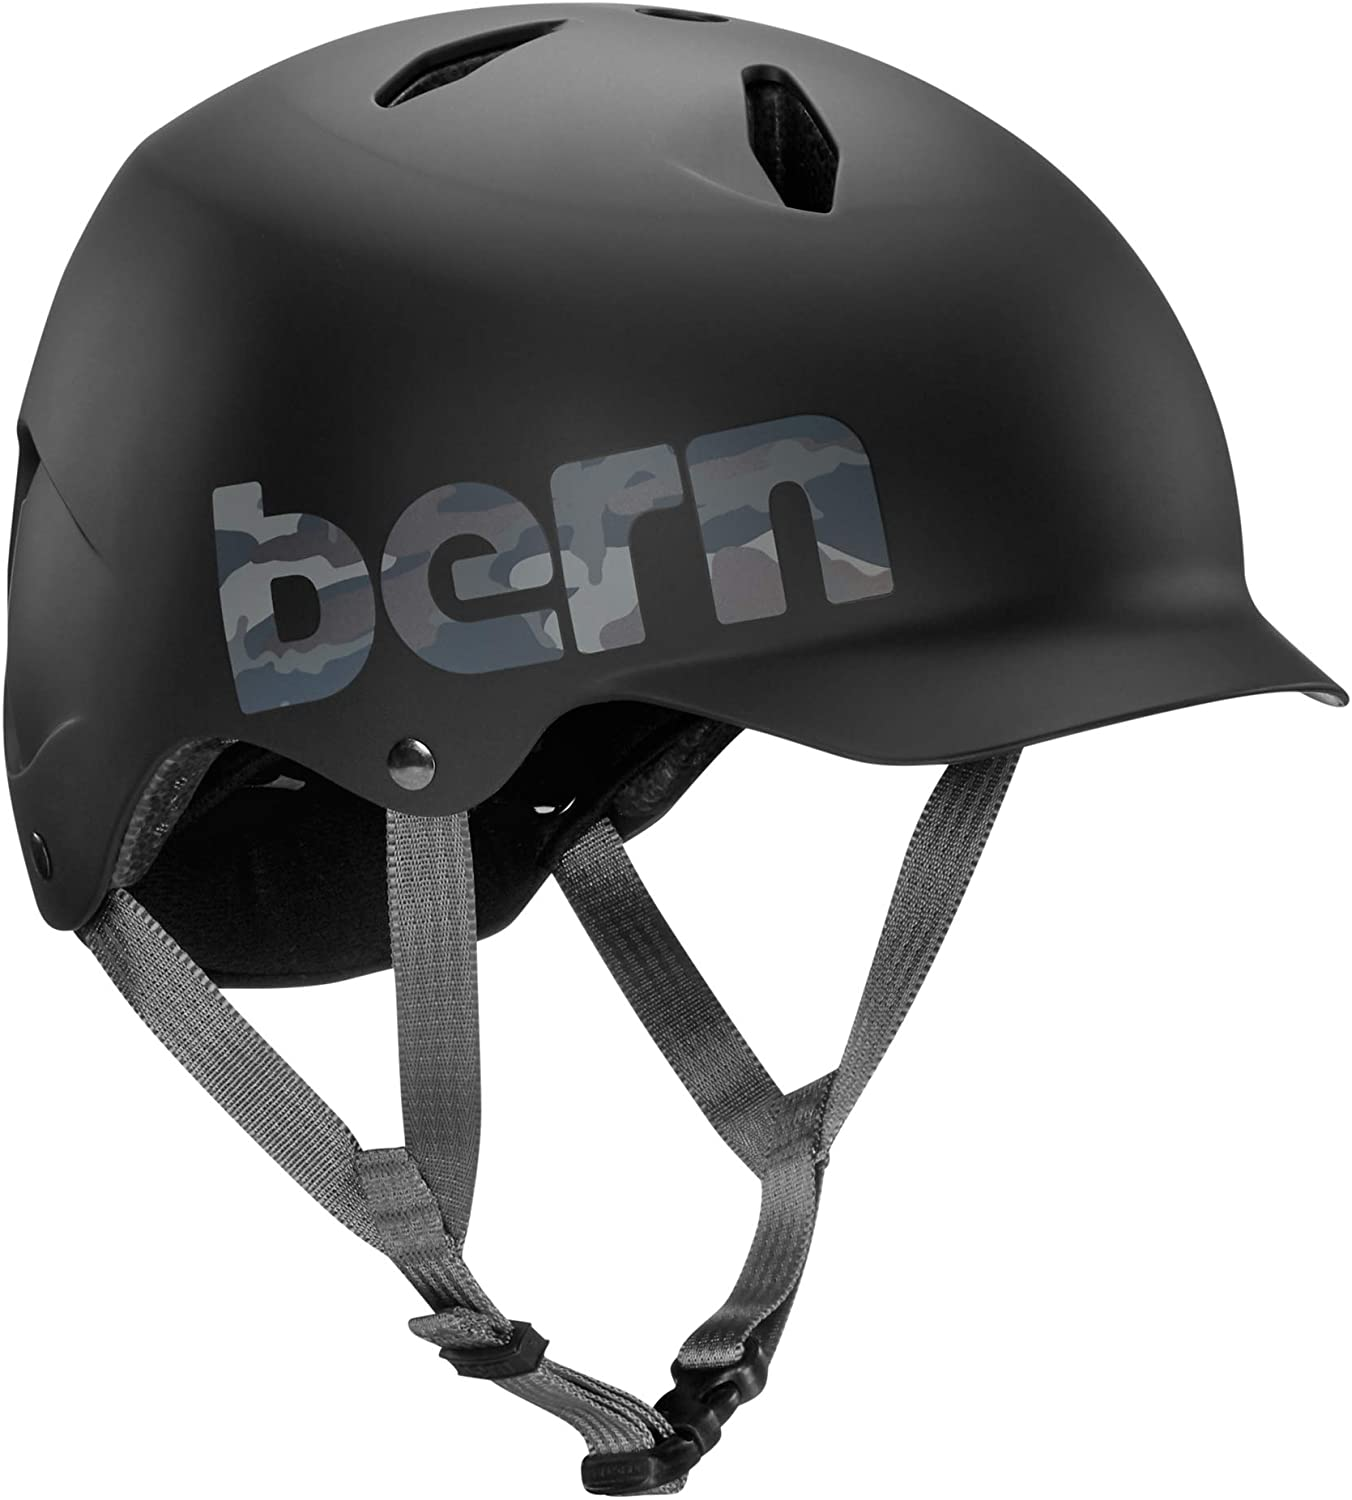 Bern Boy 's Bandita Jr MIPS – Casco